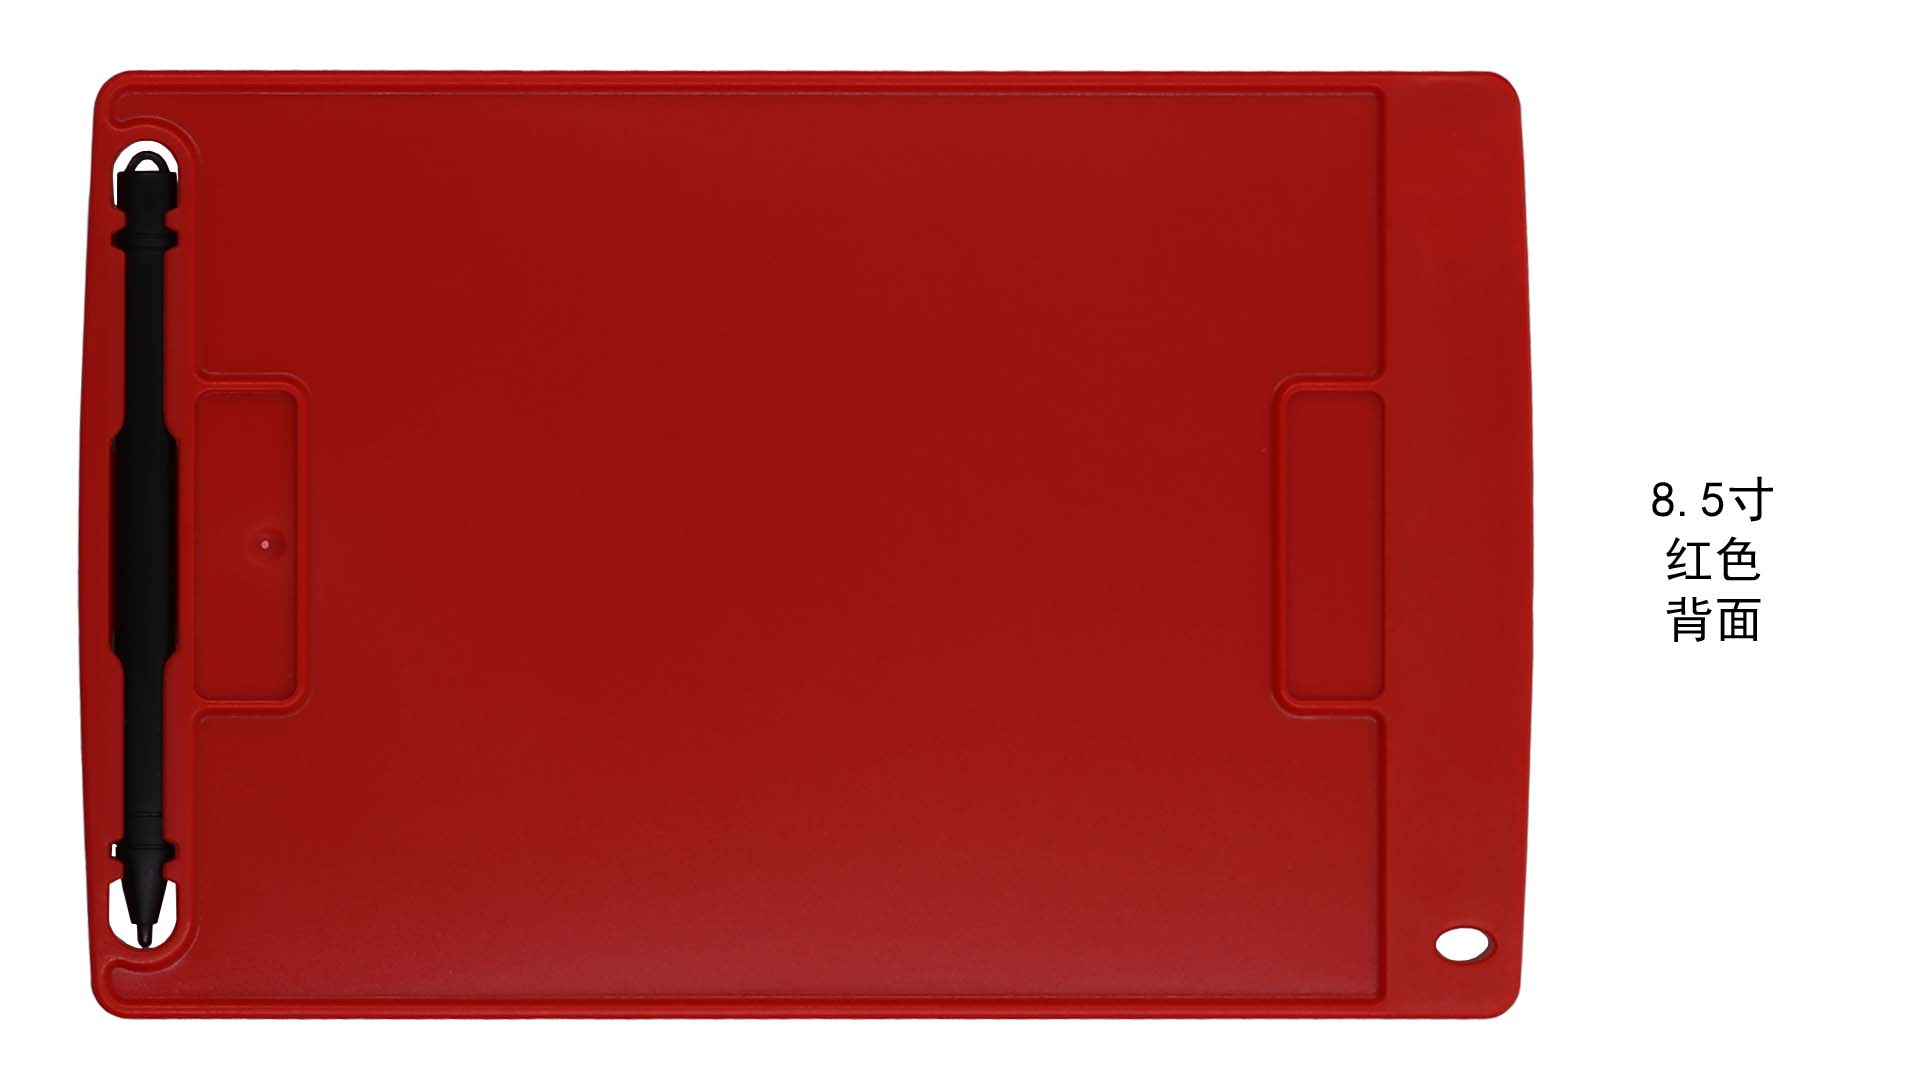 images/bulk-wholesale/85-Inch-Drawing-Tablet-Lightweight-Compact-Design-Flexible-LCD-Display-Eco-Friendly-Simple-to-Use-plusbuyer_8.jpg